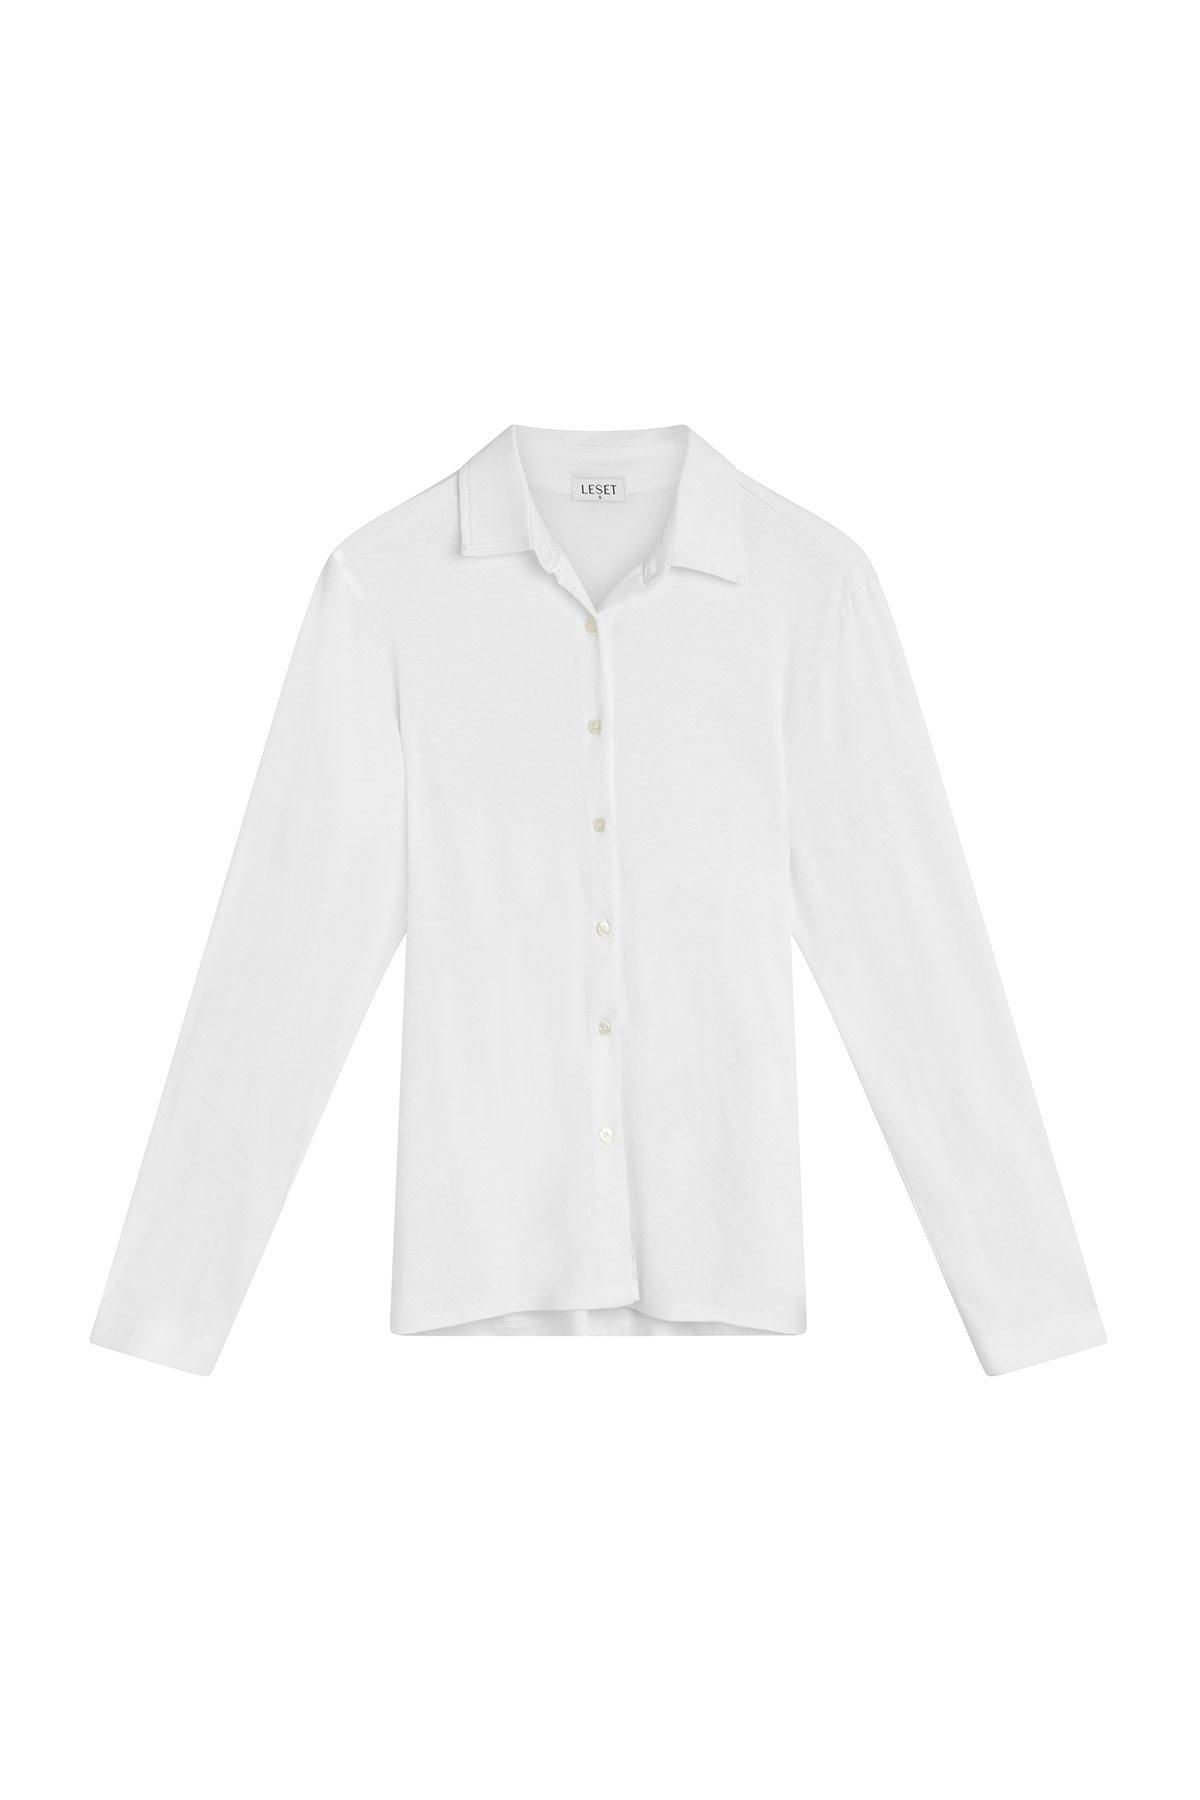 Dylan Fitted Button Down - White 4